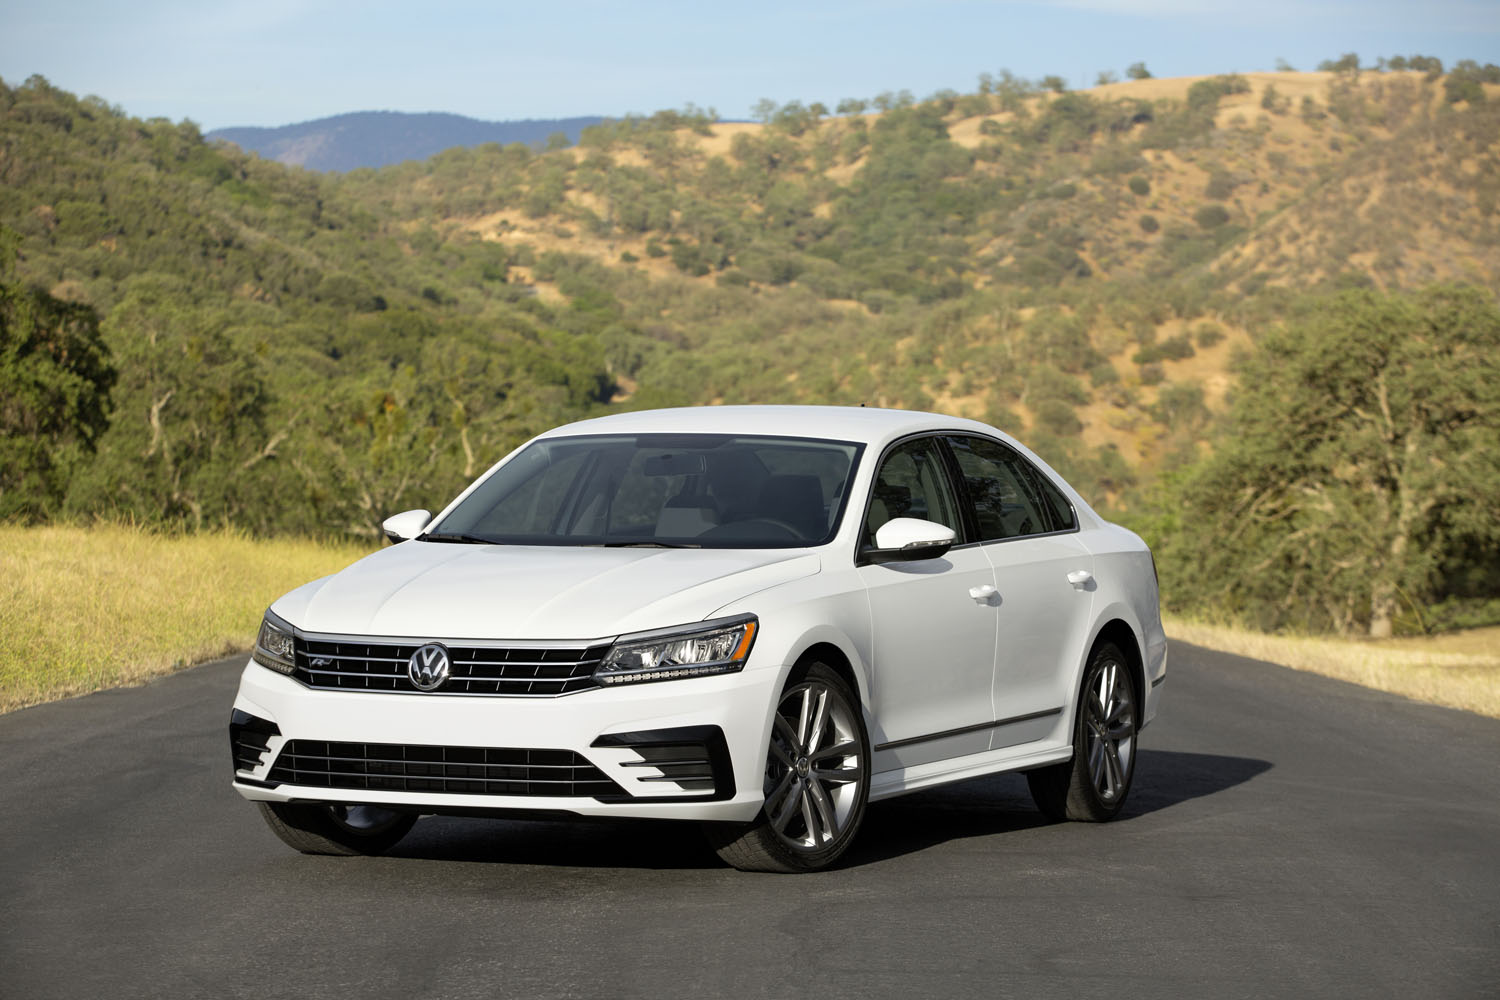 a gti 39 d volkswagen passat exists will we see it in showrooms. Black Bedroom Furniture Sets. Home Design Ideas